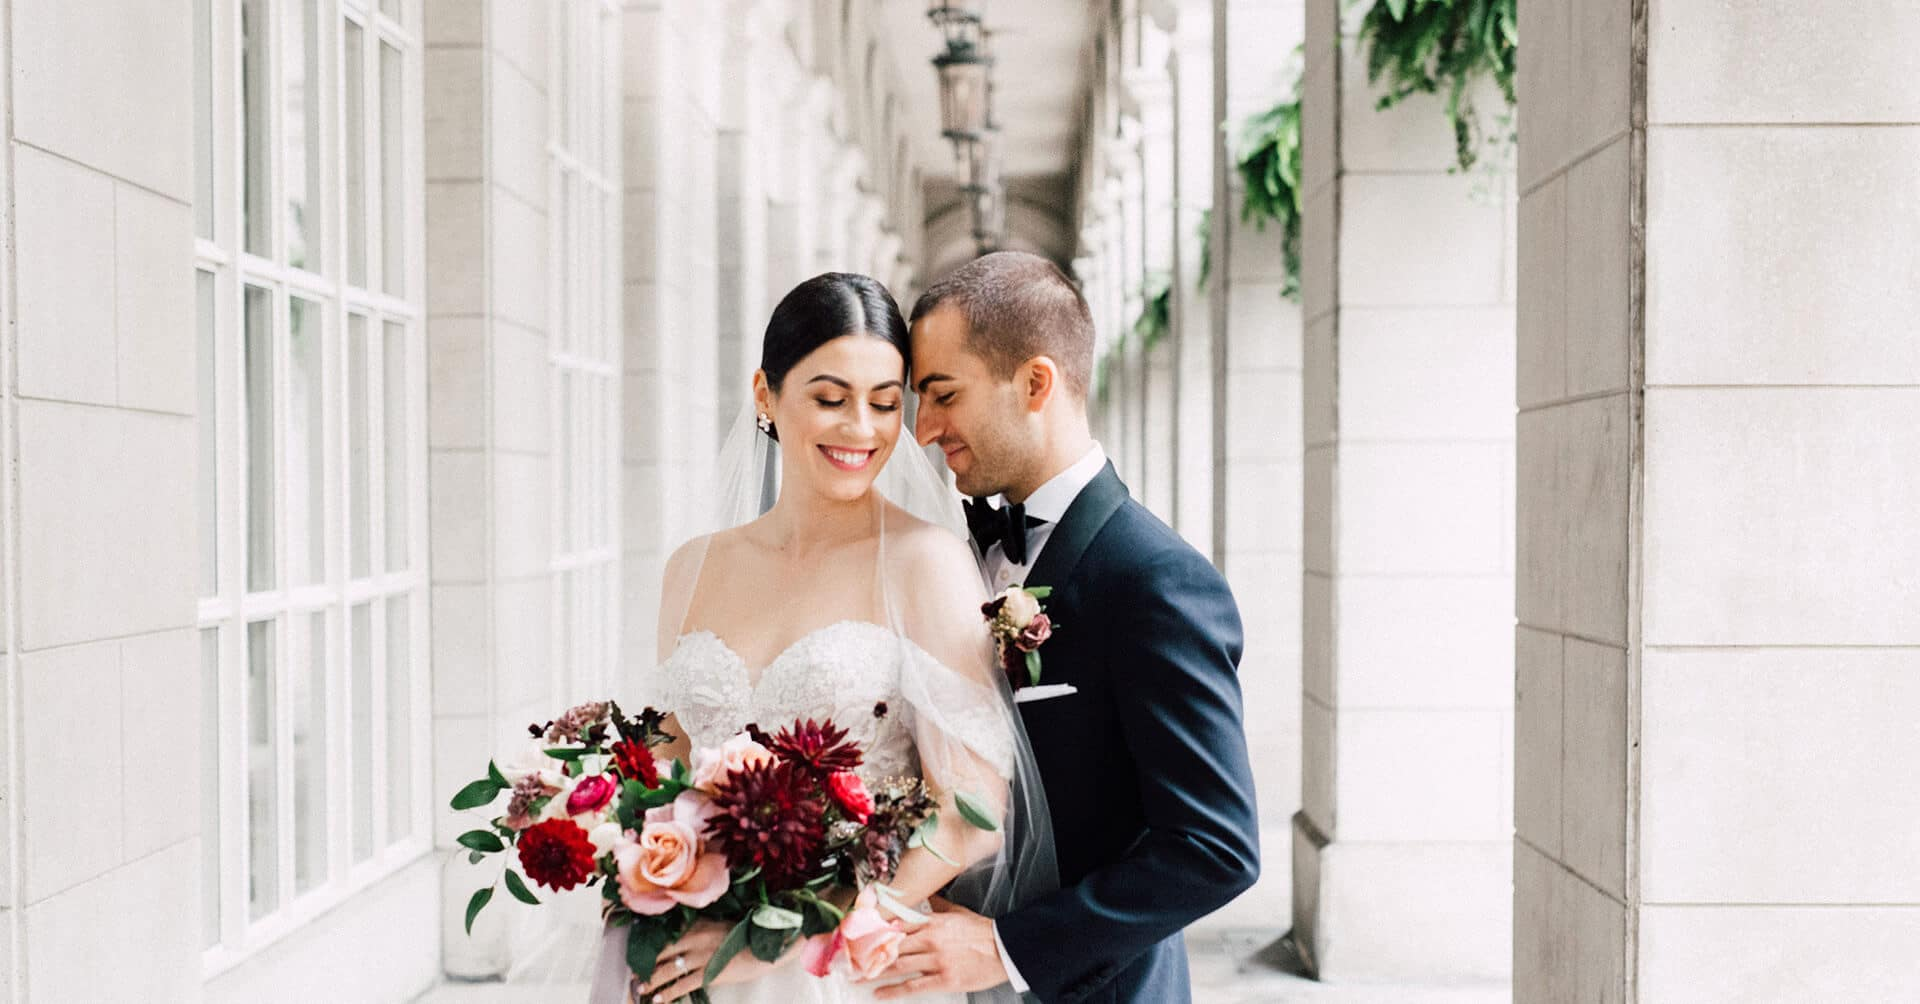 Hero image for Christine and Noah's Romantic Toronto Wedding at the Burroughes